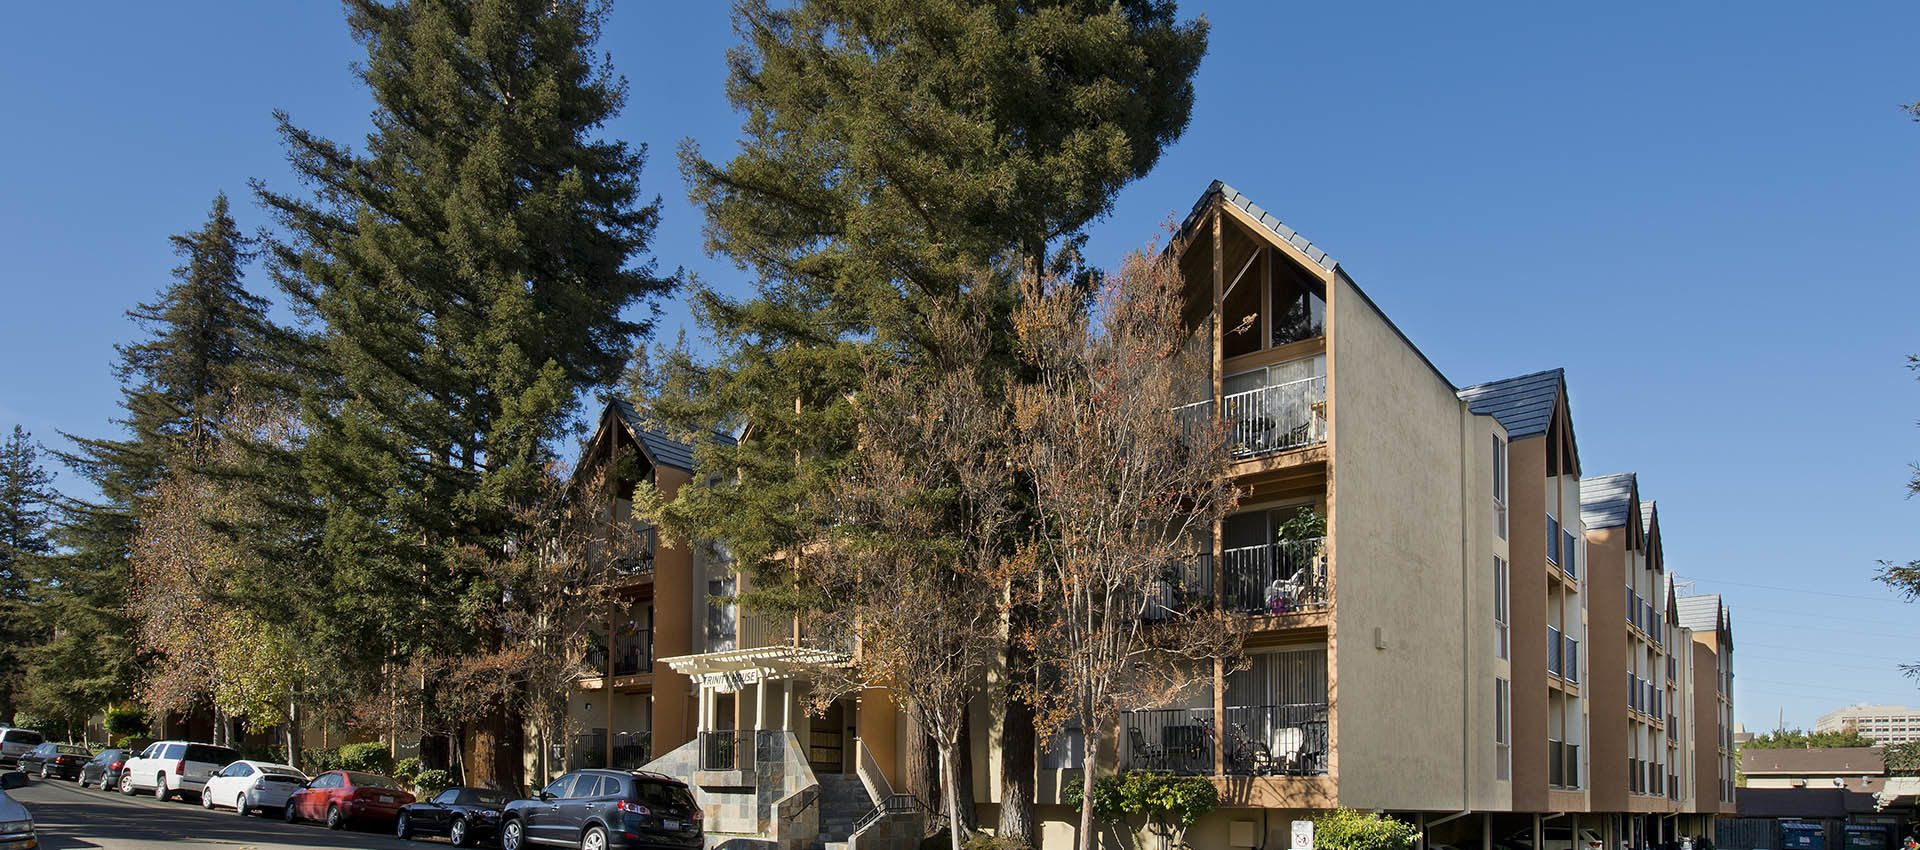 Resident buildings amid mature trees at Atrium Downtown in Walnut Creek, California